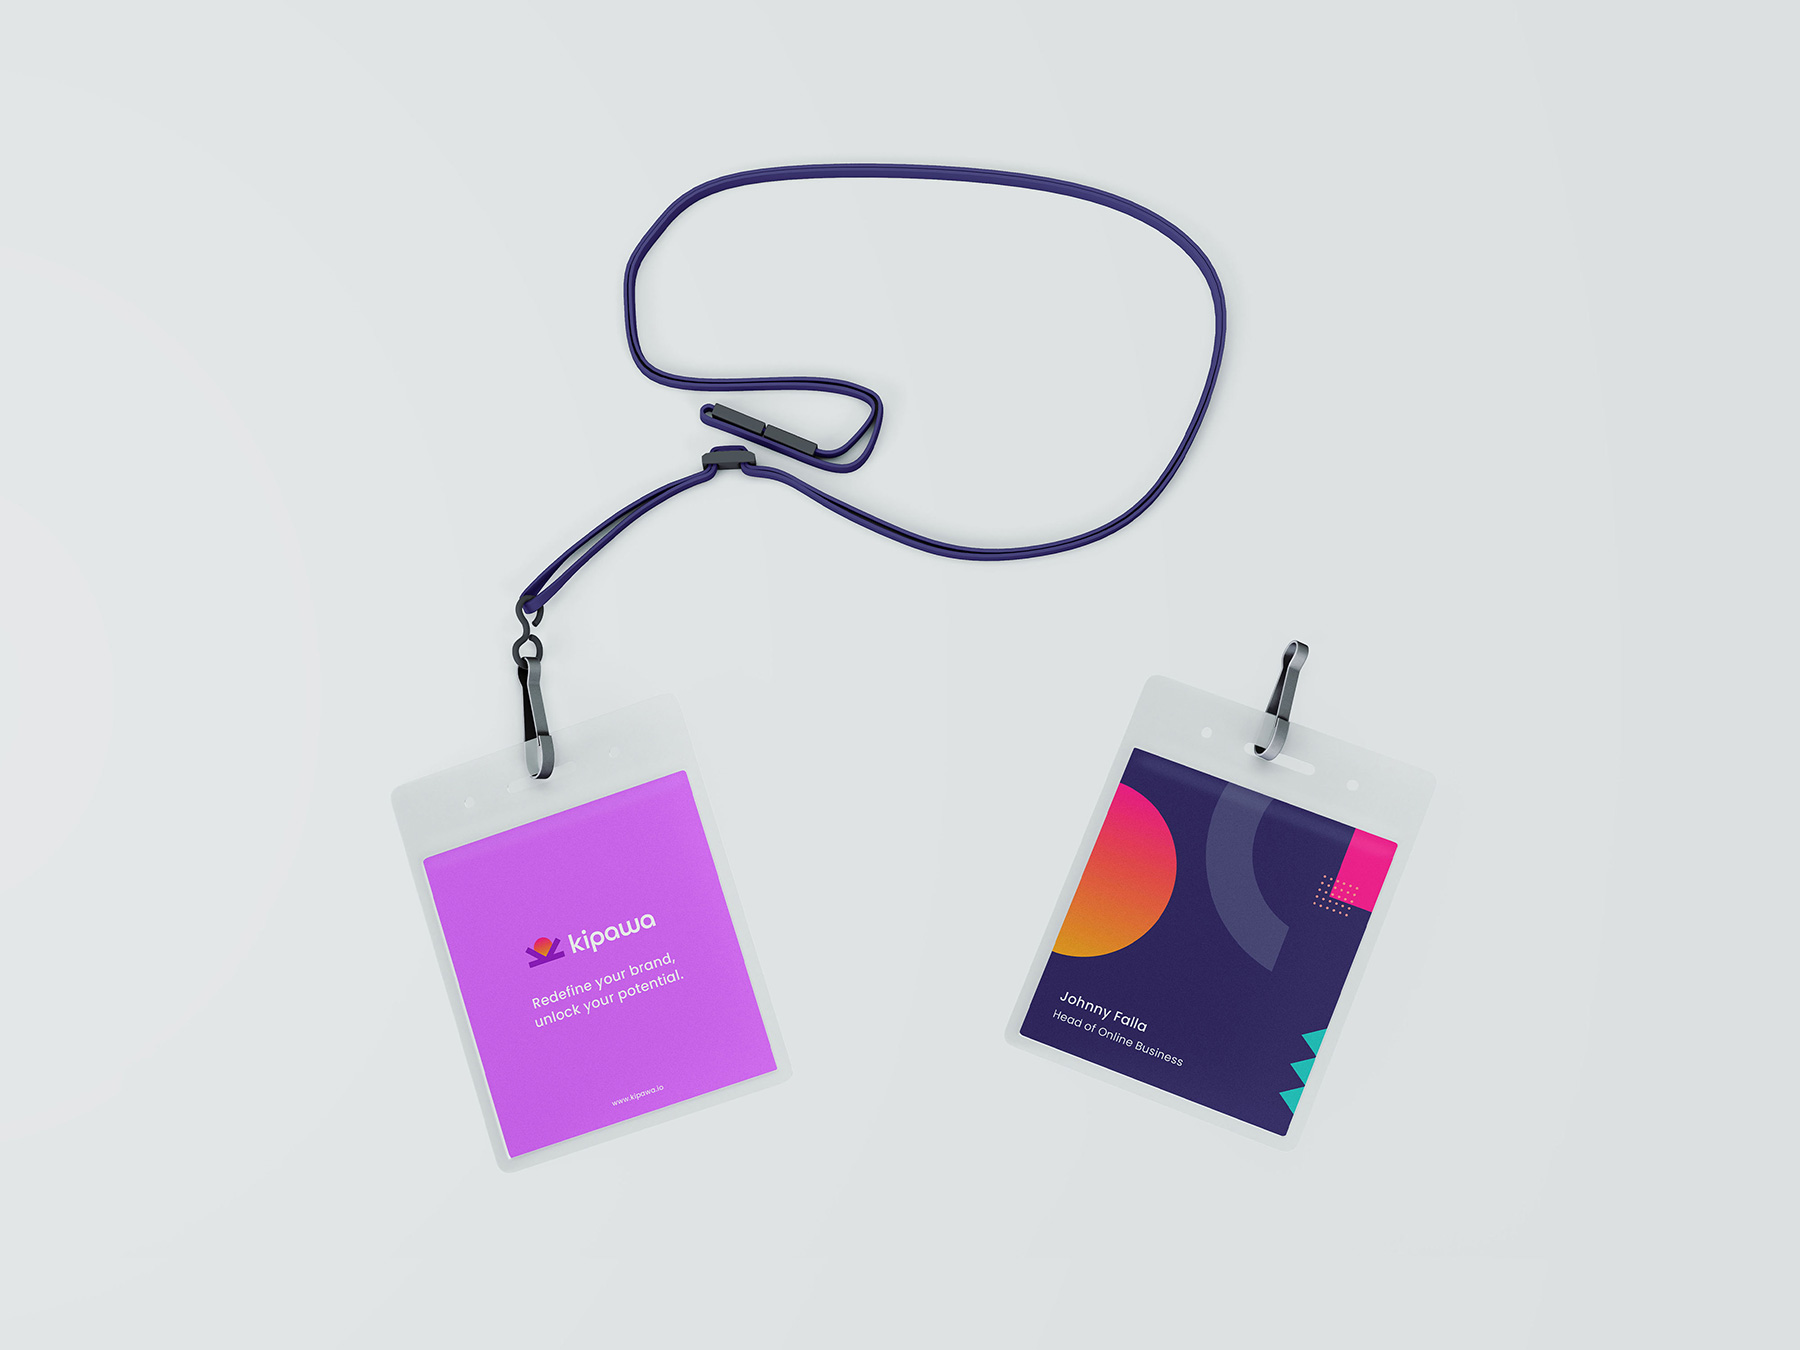 Lanyard design using bright, bold colours and branding